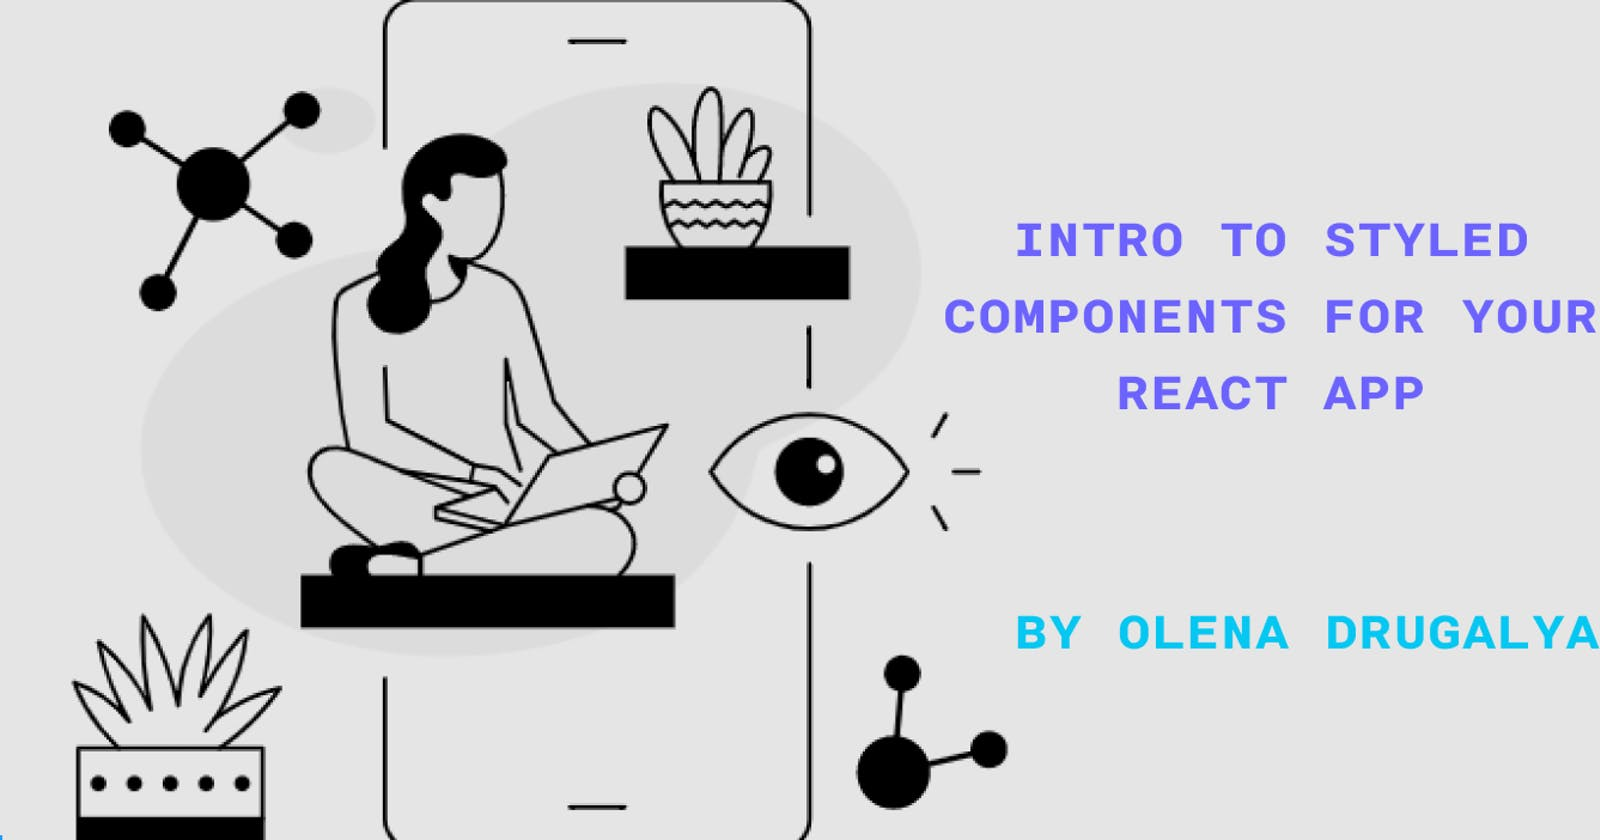 Intro to Styled Components for your React App